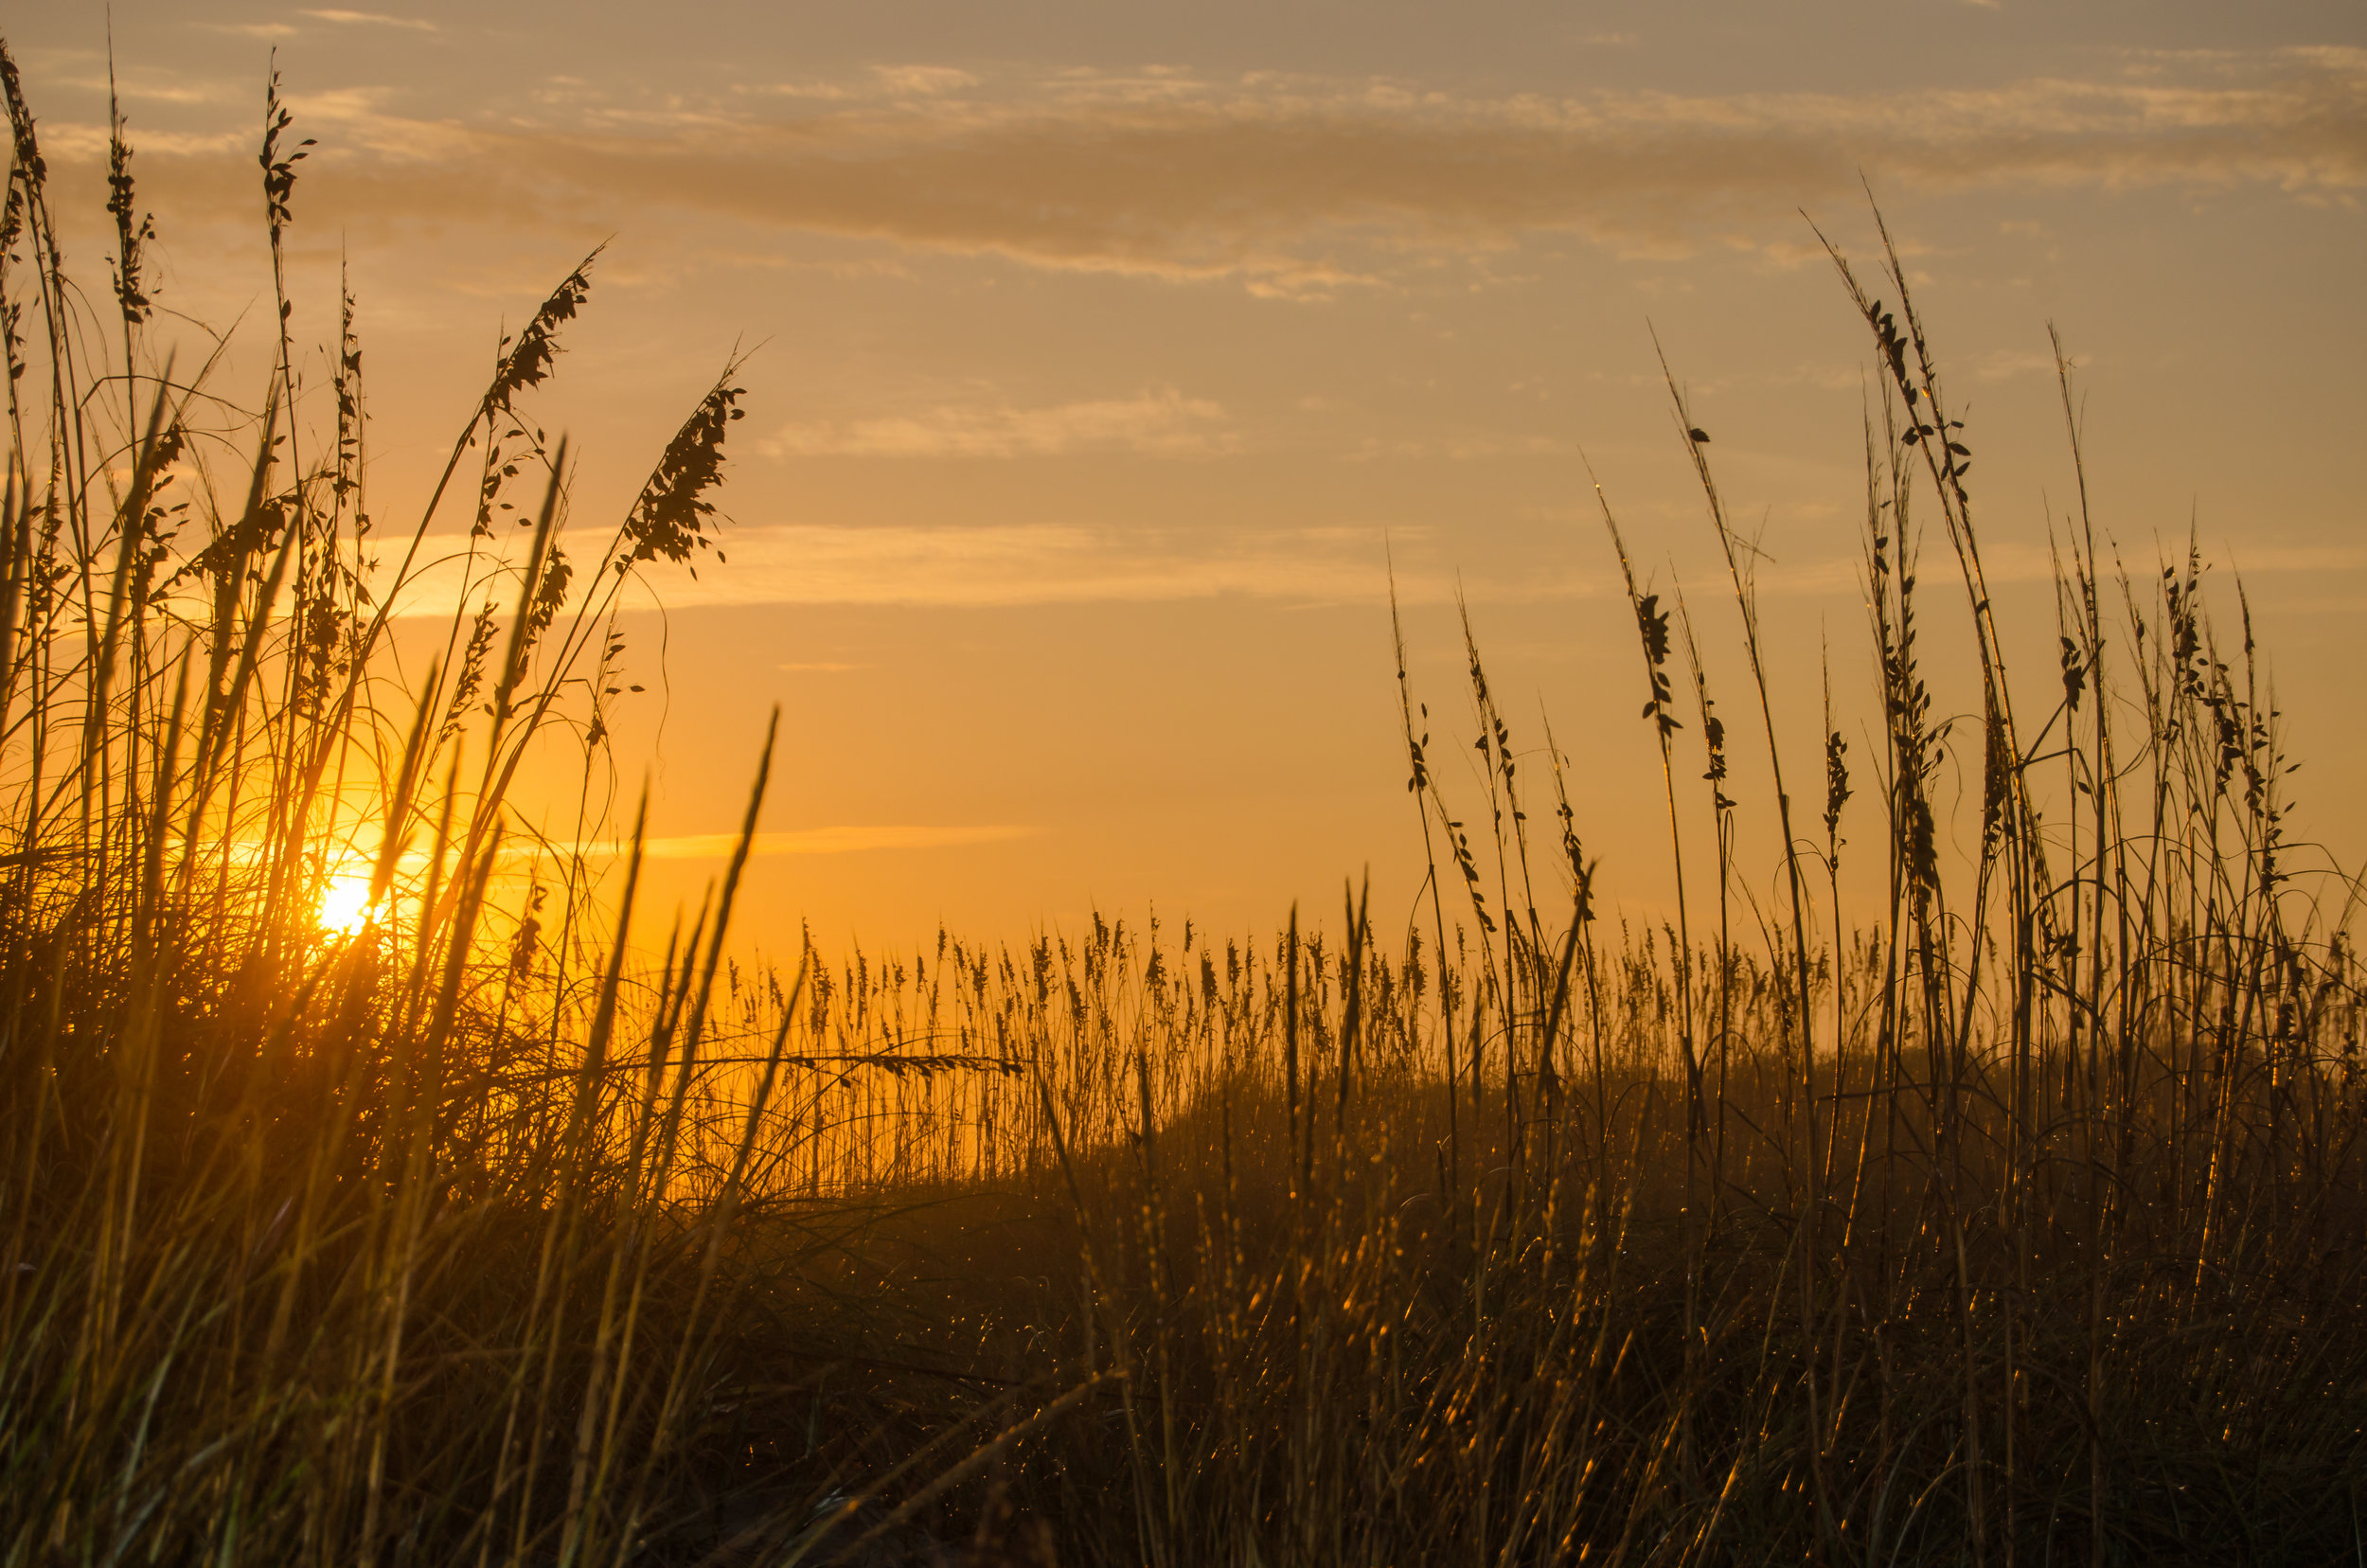 beach-sea oats-sunset-Coquina Beach-Outer Banks-OBX-North Carolina.jpg